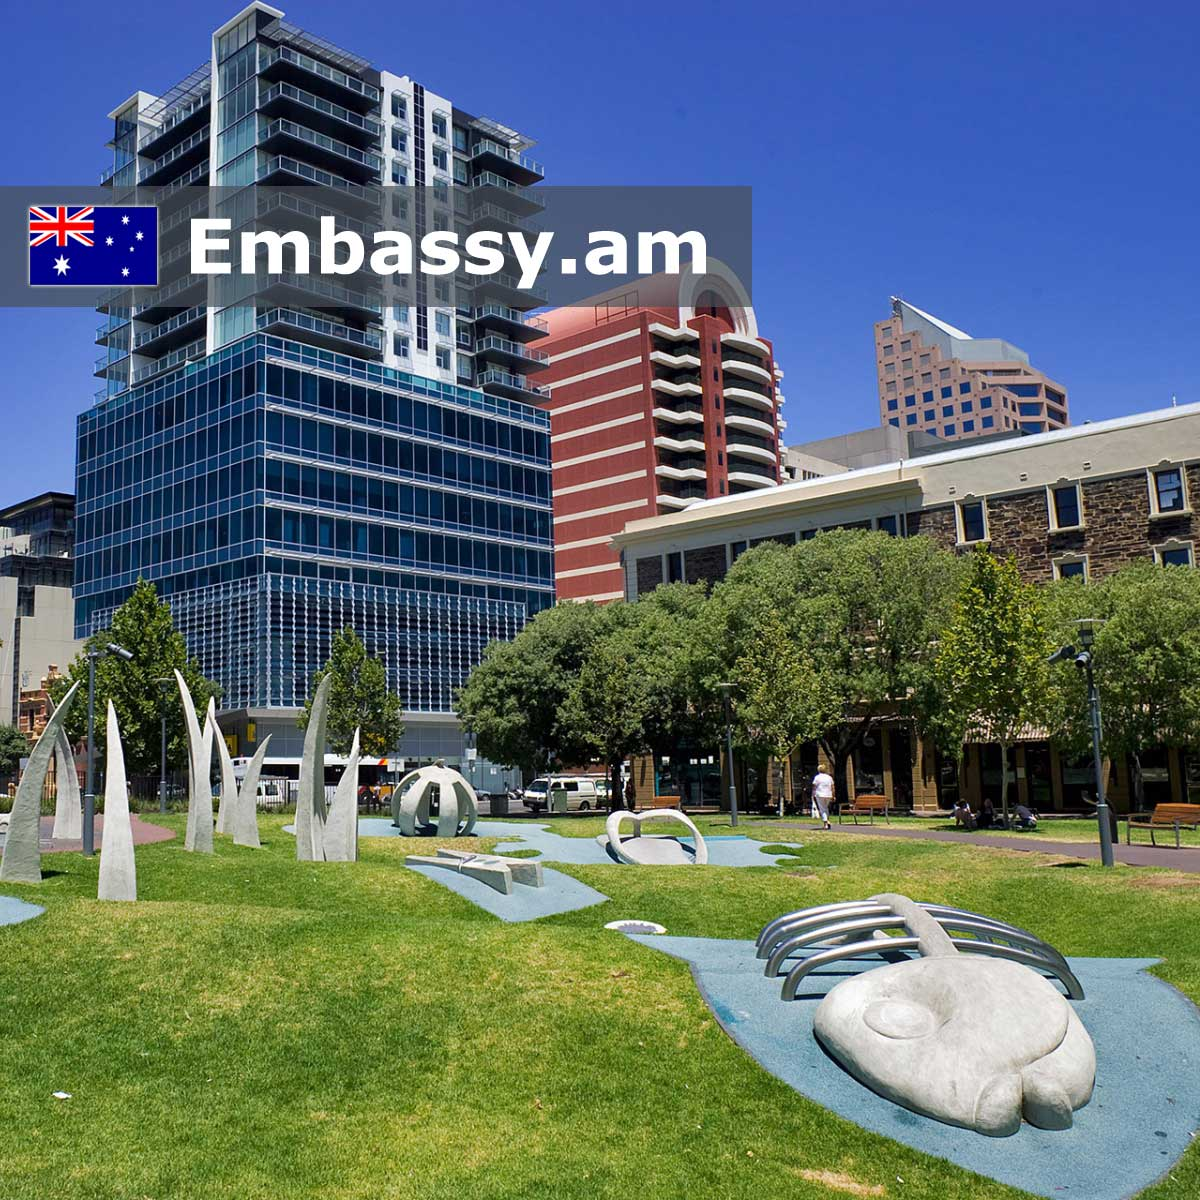 Adelaide - Hotels in Australia - Embassy.am